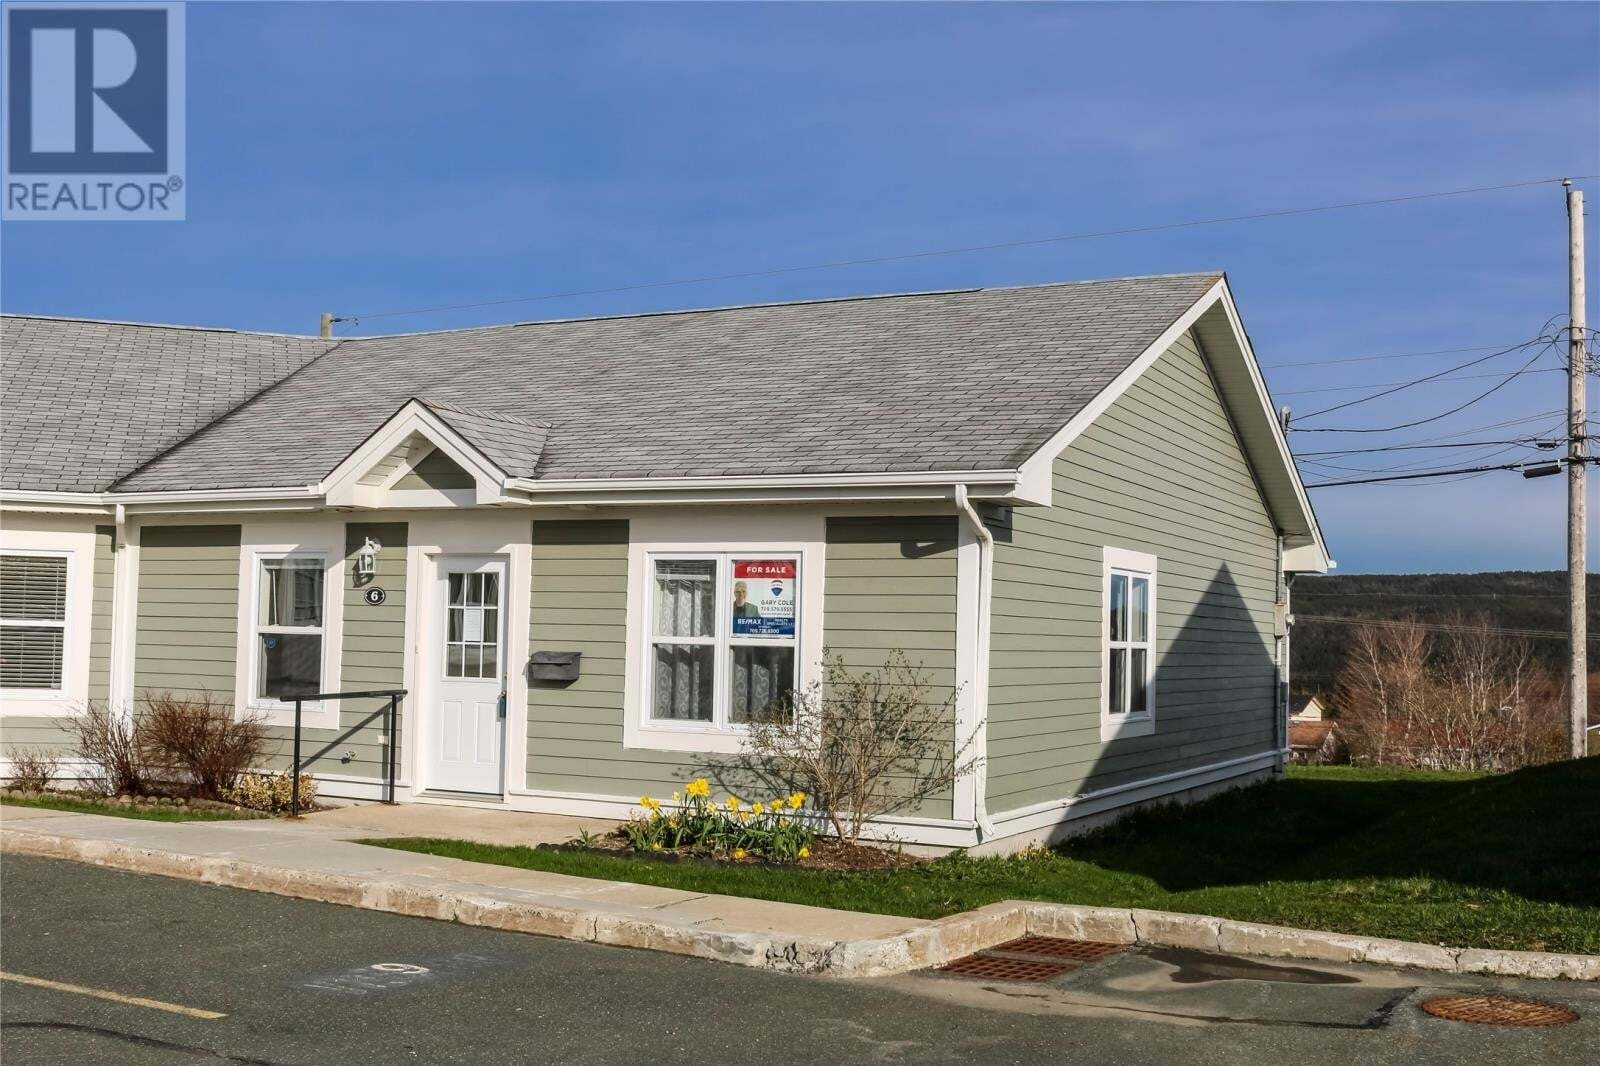 House for sale at 6 Sunchase Ct St. John's Newfoundland - MLS: 1221638